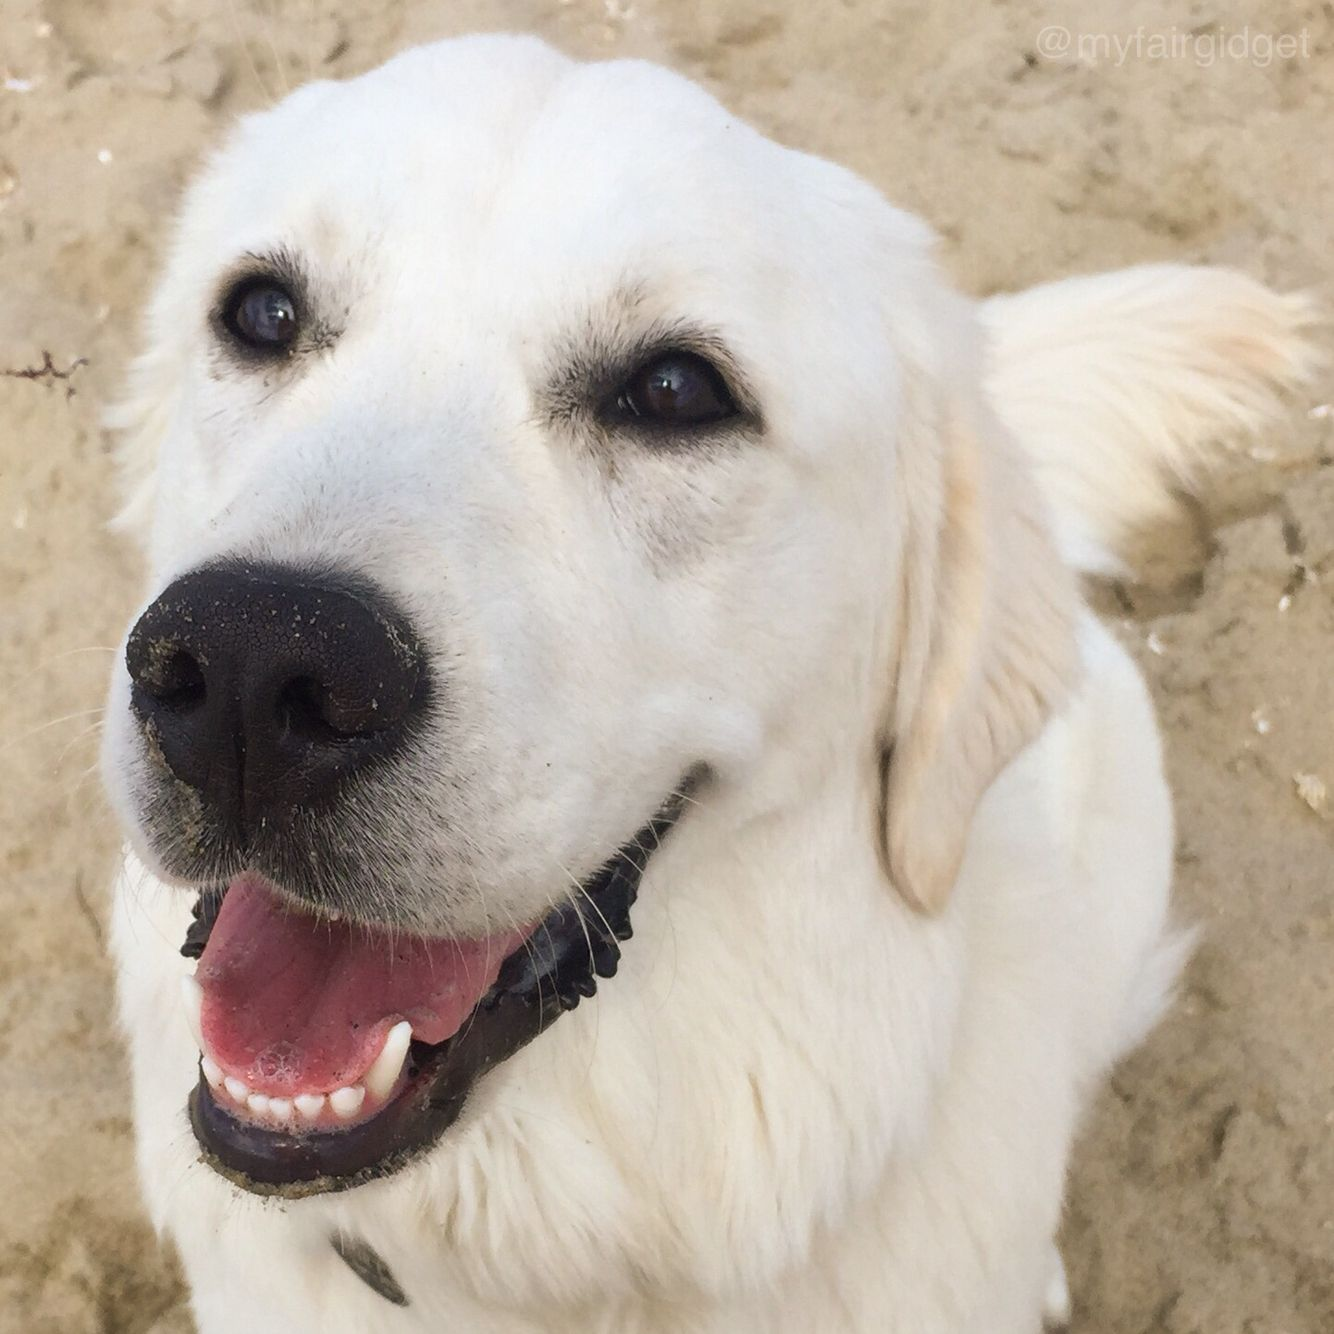 Smile Gidget Lokelani The Little Puppy With Big Ideas An English Cream Golden Retriever Loving Living In Beautif Golden Retriever Little Puppies Puppies